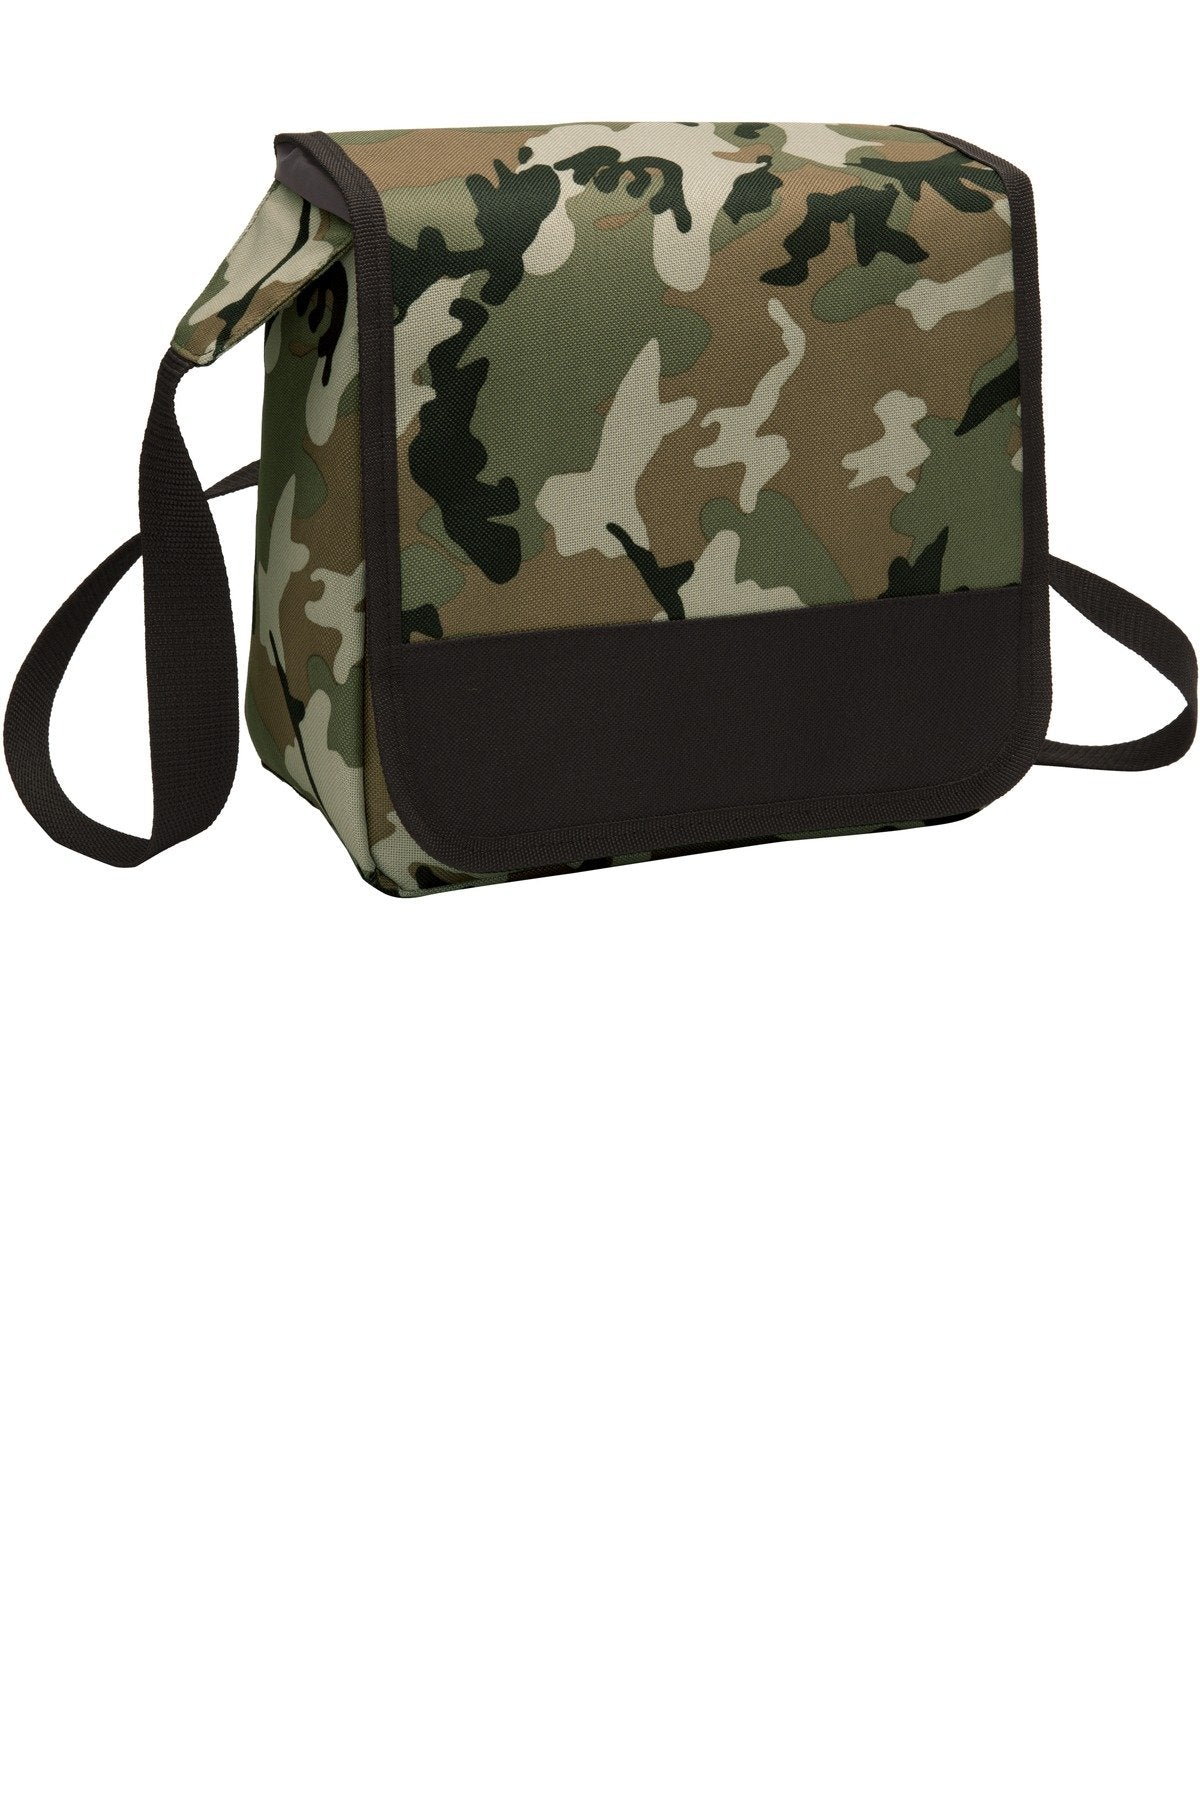 Military Camo/ Black - Port Authority BG753